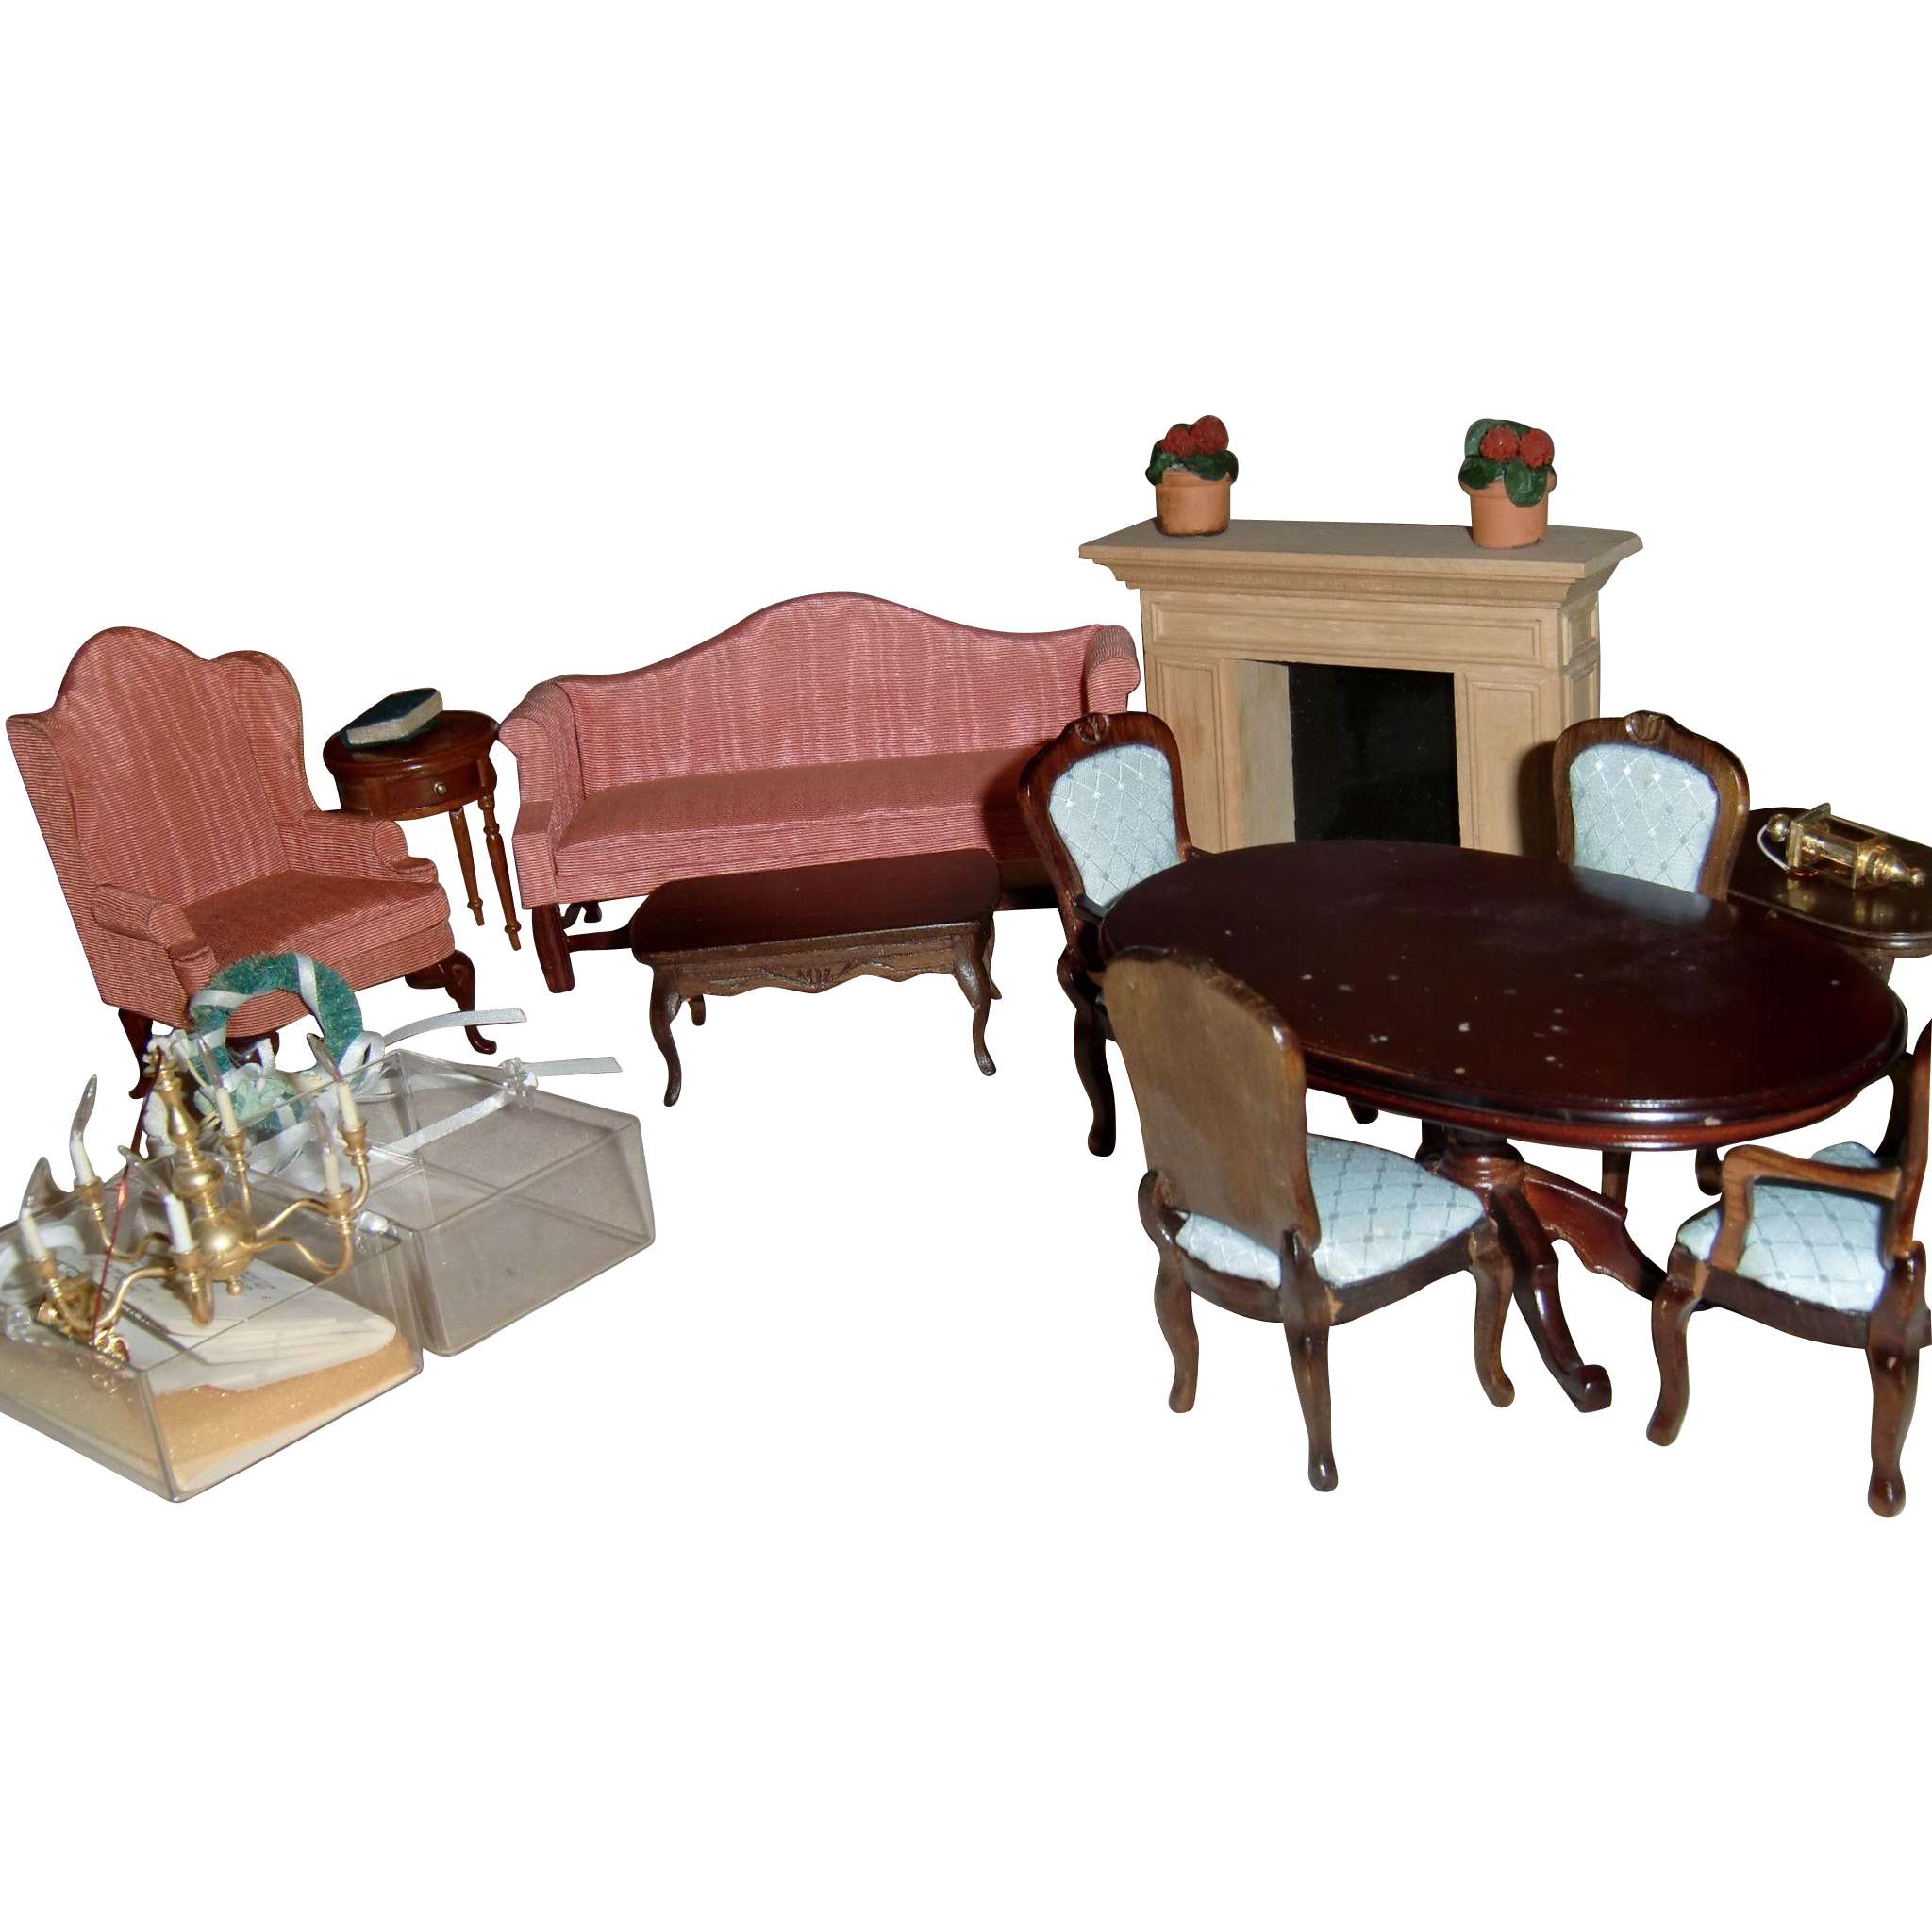 Vintage Dollhouse Furniture 19 Pieces From